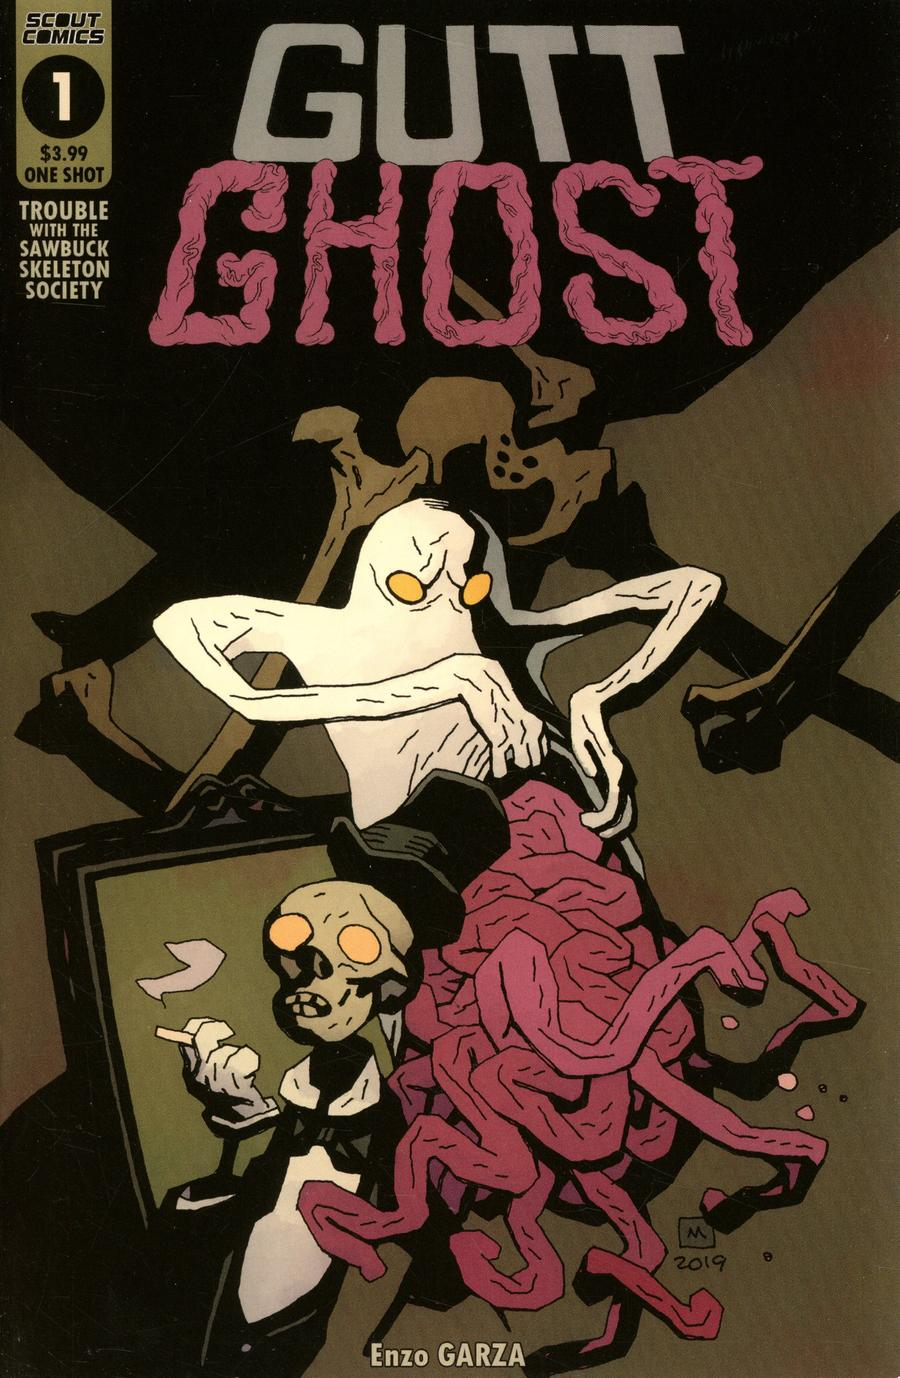 Gutt Ghost Trouble With The Sawbuck Skeleton Society One Shot Cover A Regular Mike Mignola Cover